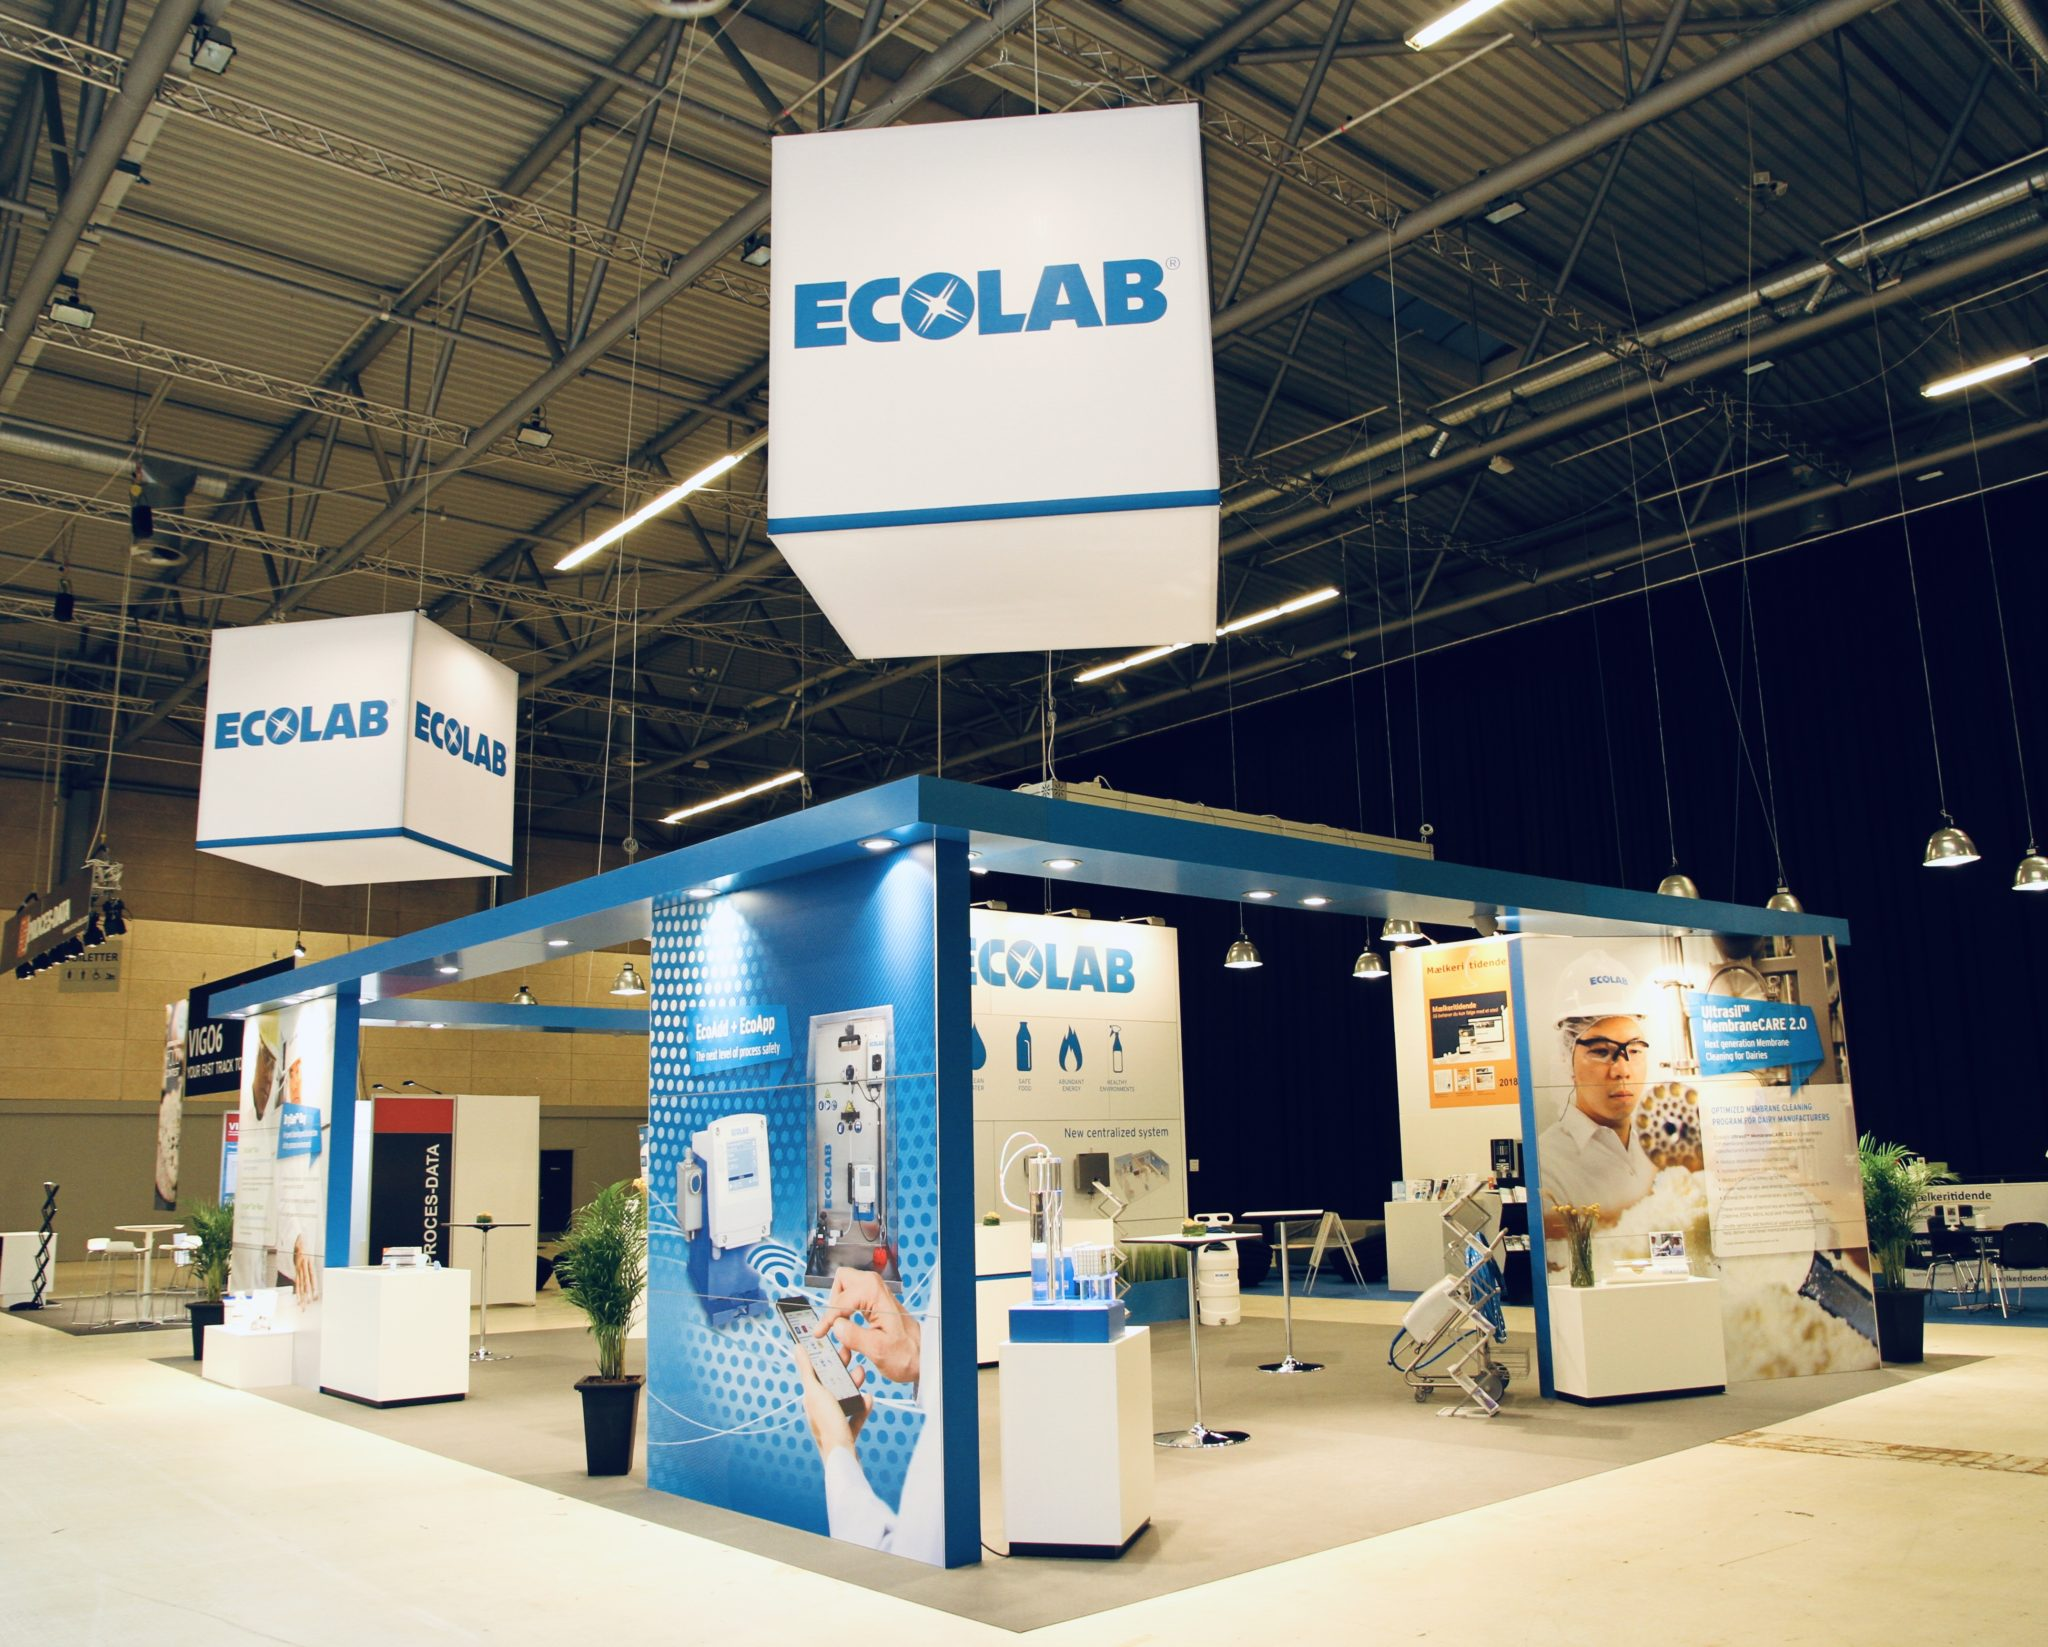 Ecolab - messestand, Expo Partner